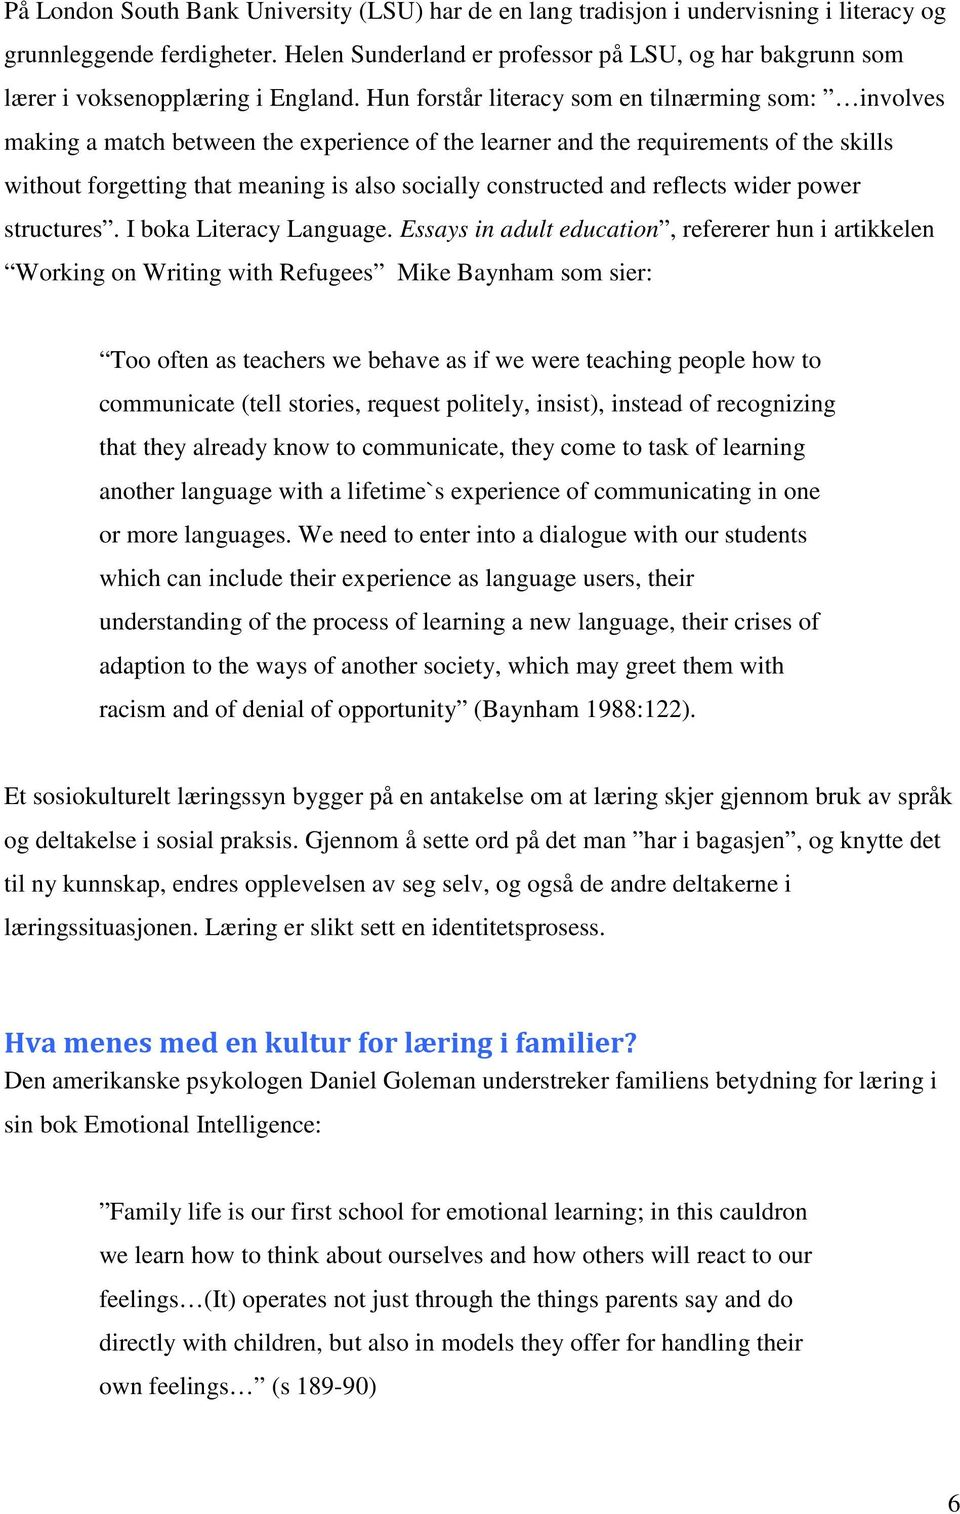 Hun forstår literacy som en tilnærming som: involves making a match between the experience of the learner and the requirements of the skills without forgetting that meaning is also socially